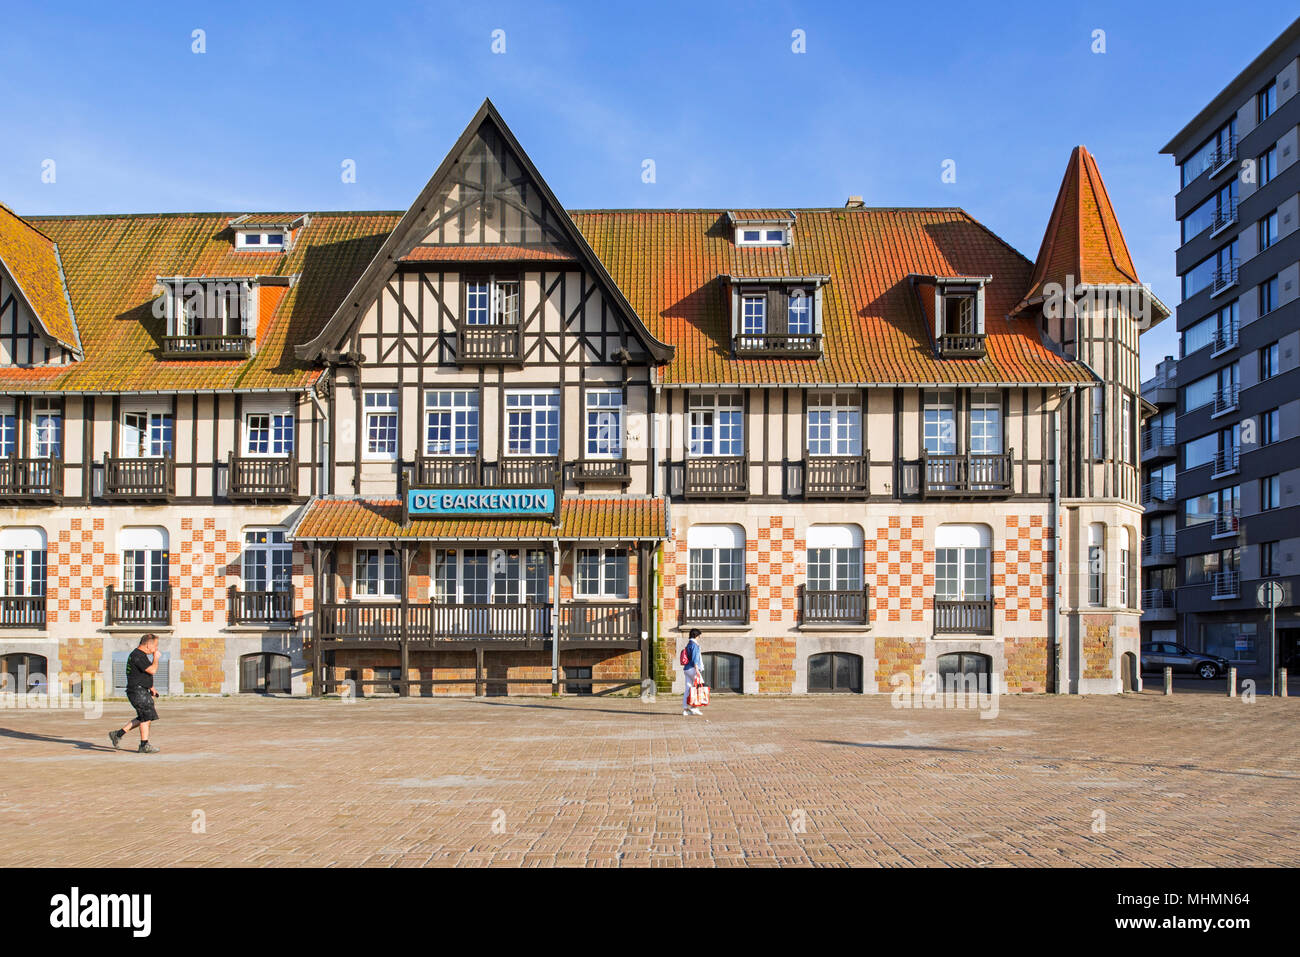 De Barkentijn, corner house in Norman style, now holiday center in the seaside resort Nieuwpoort / Nieuport, West Flanders, Belgium - Stock Image